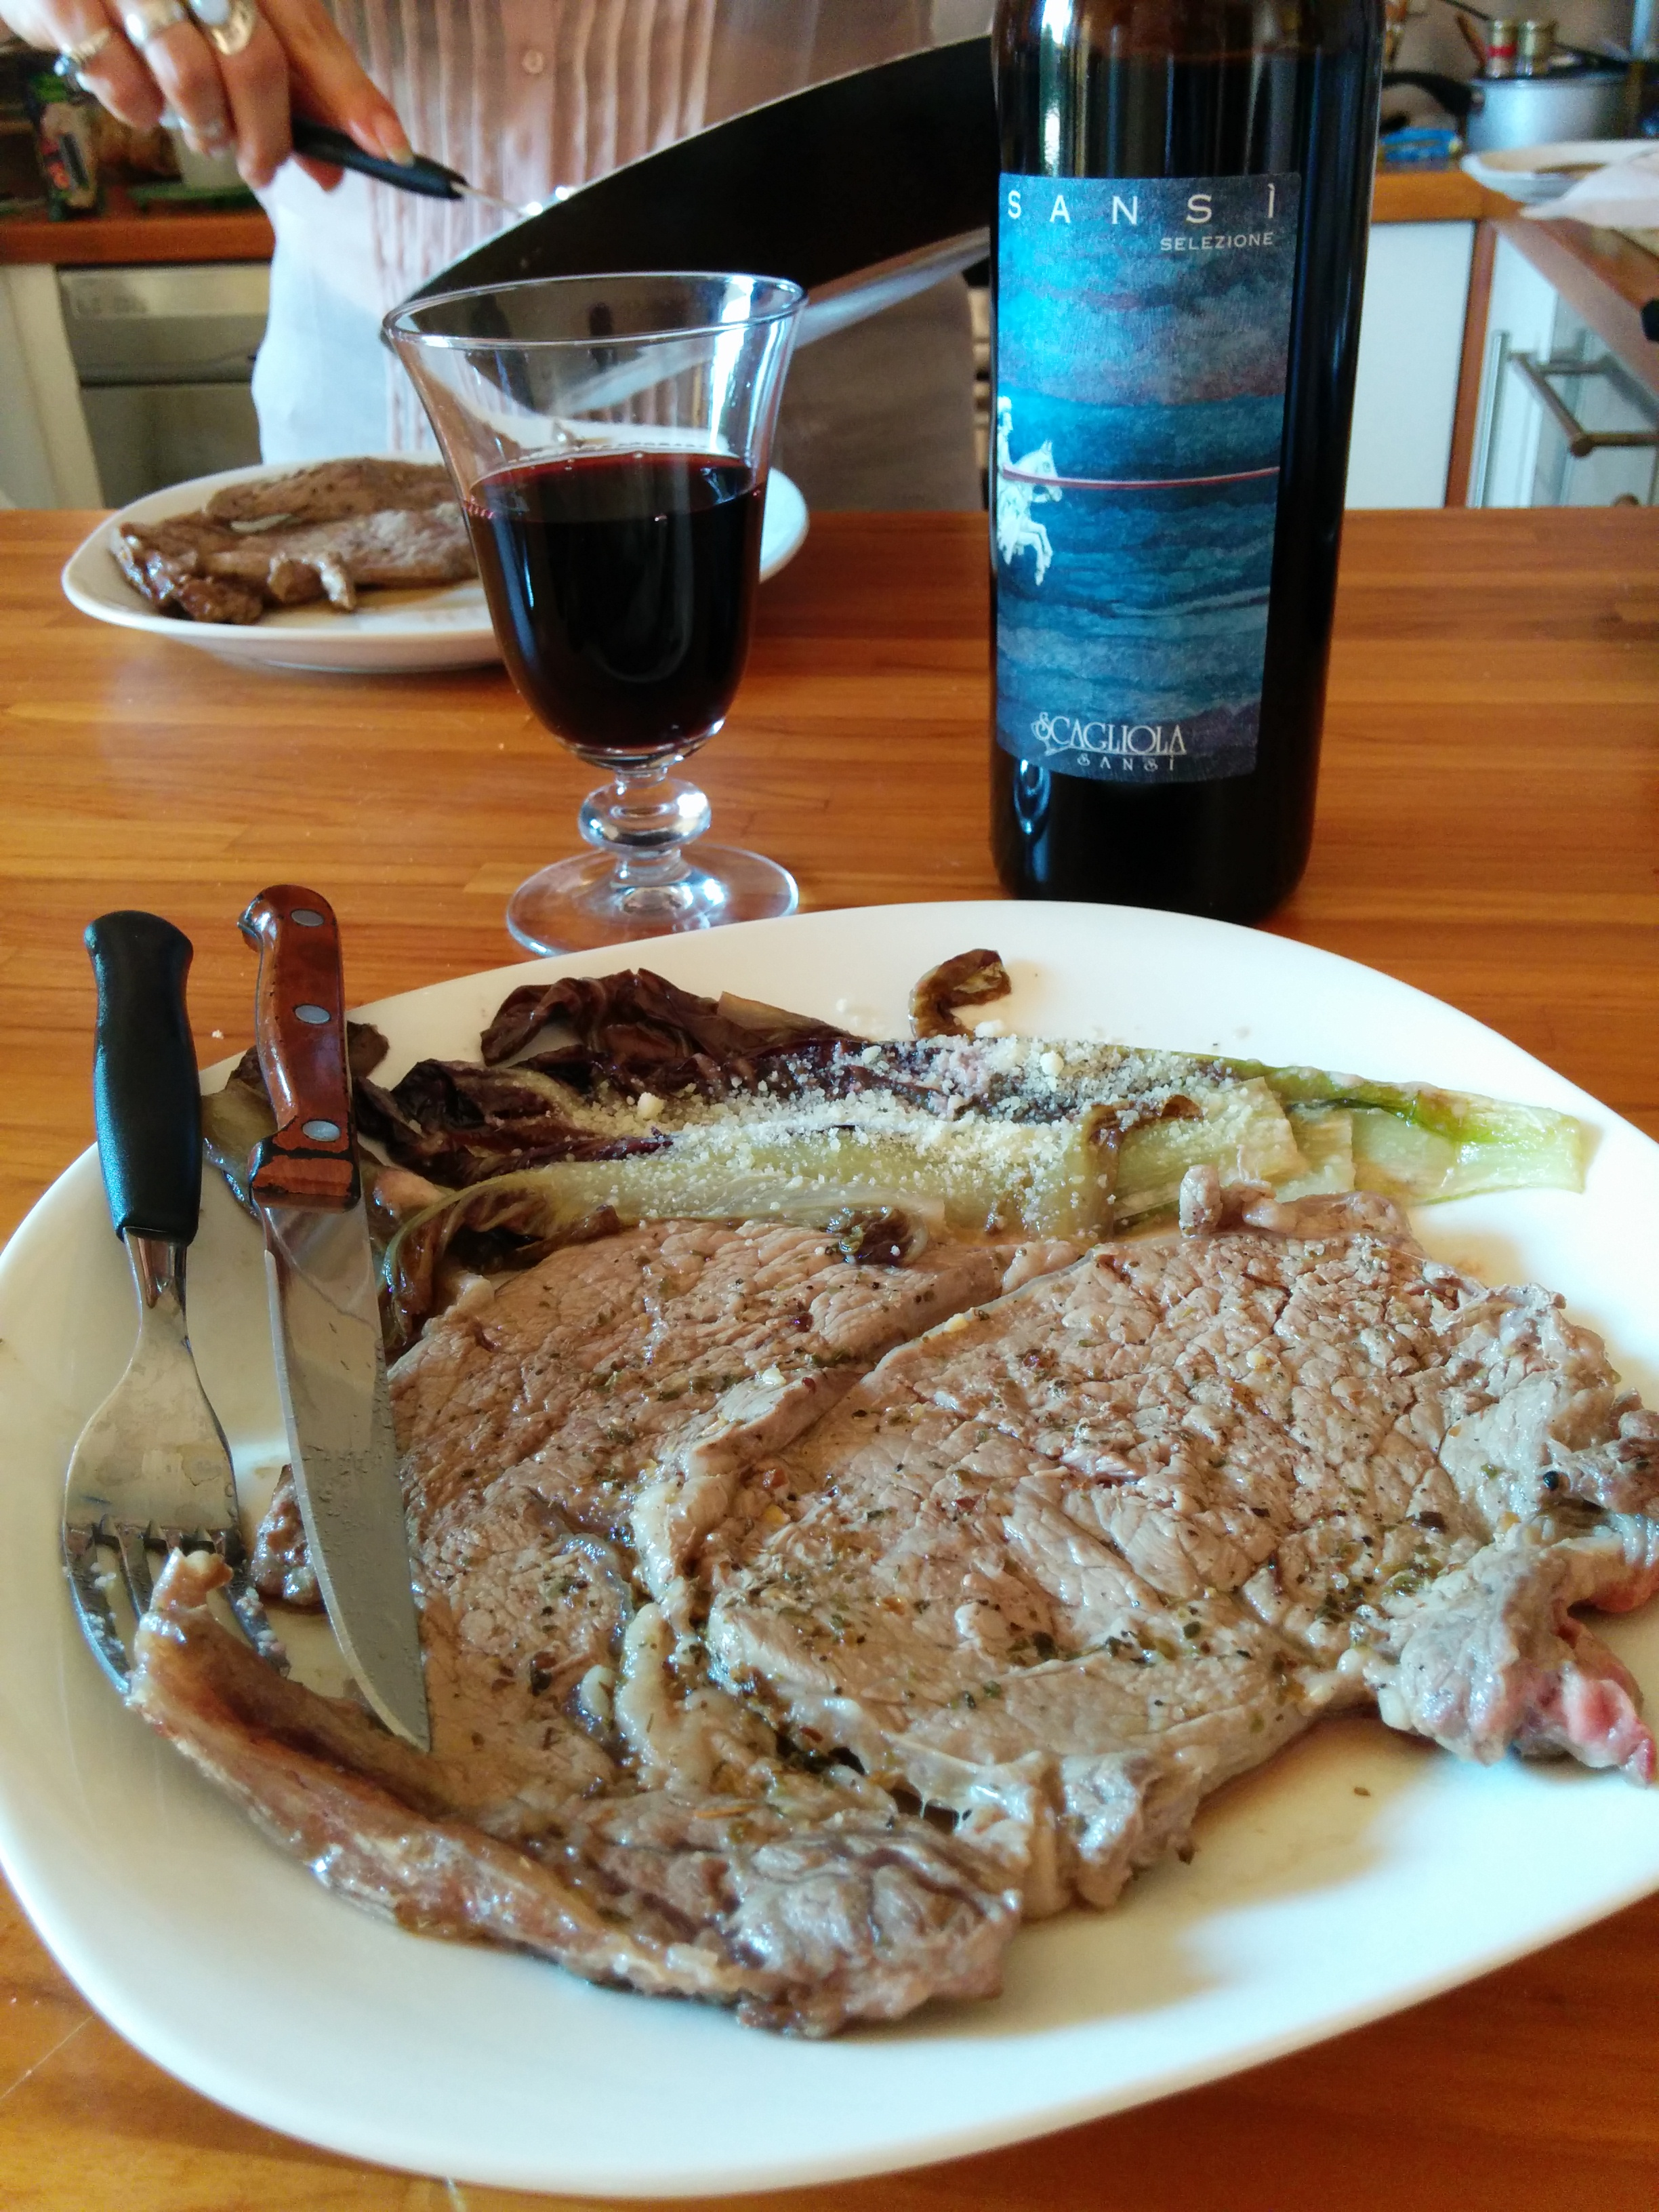 Felizzano (AL): Steak made of Fassona beef from Macelleria Canobbio paired with an amazing Barbera d'Asti Superiore from Sansì